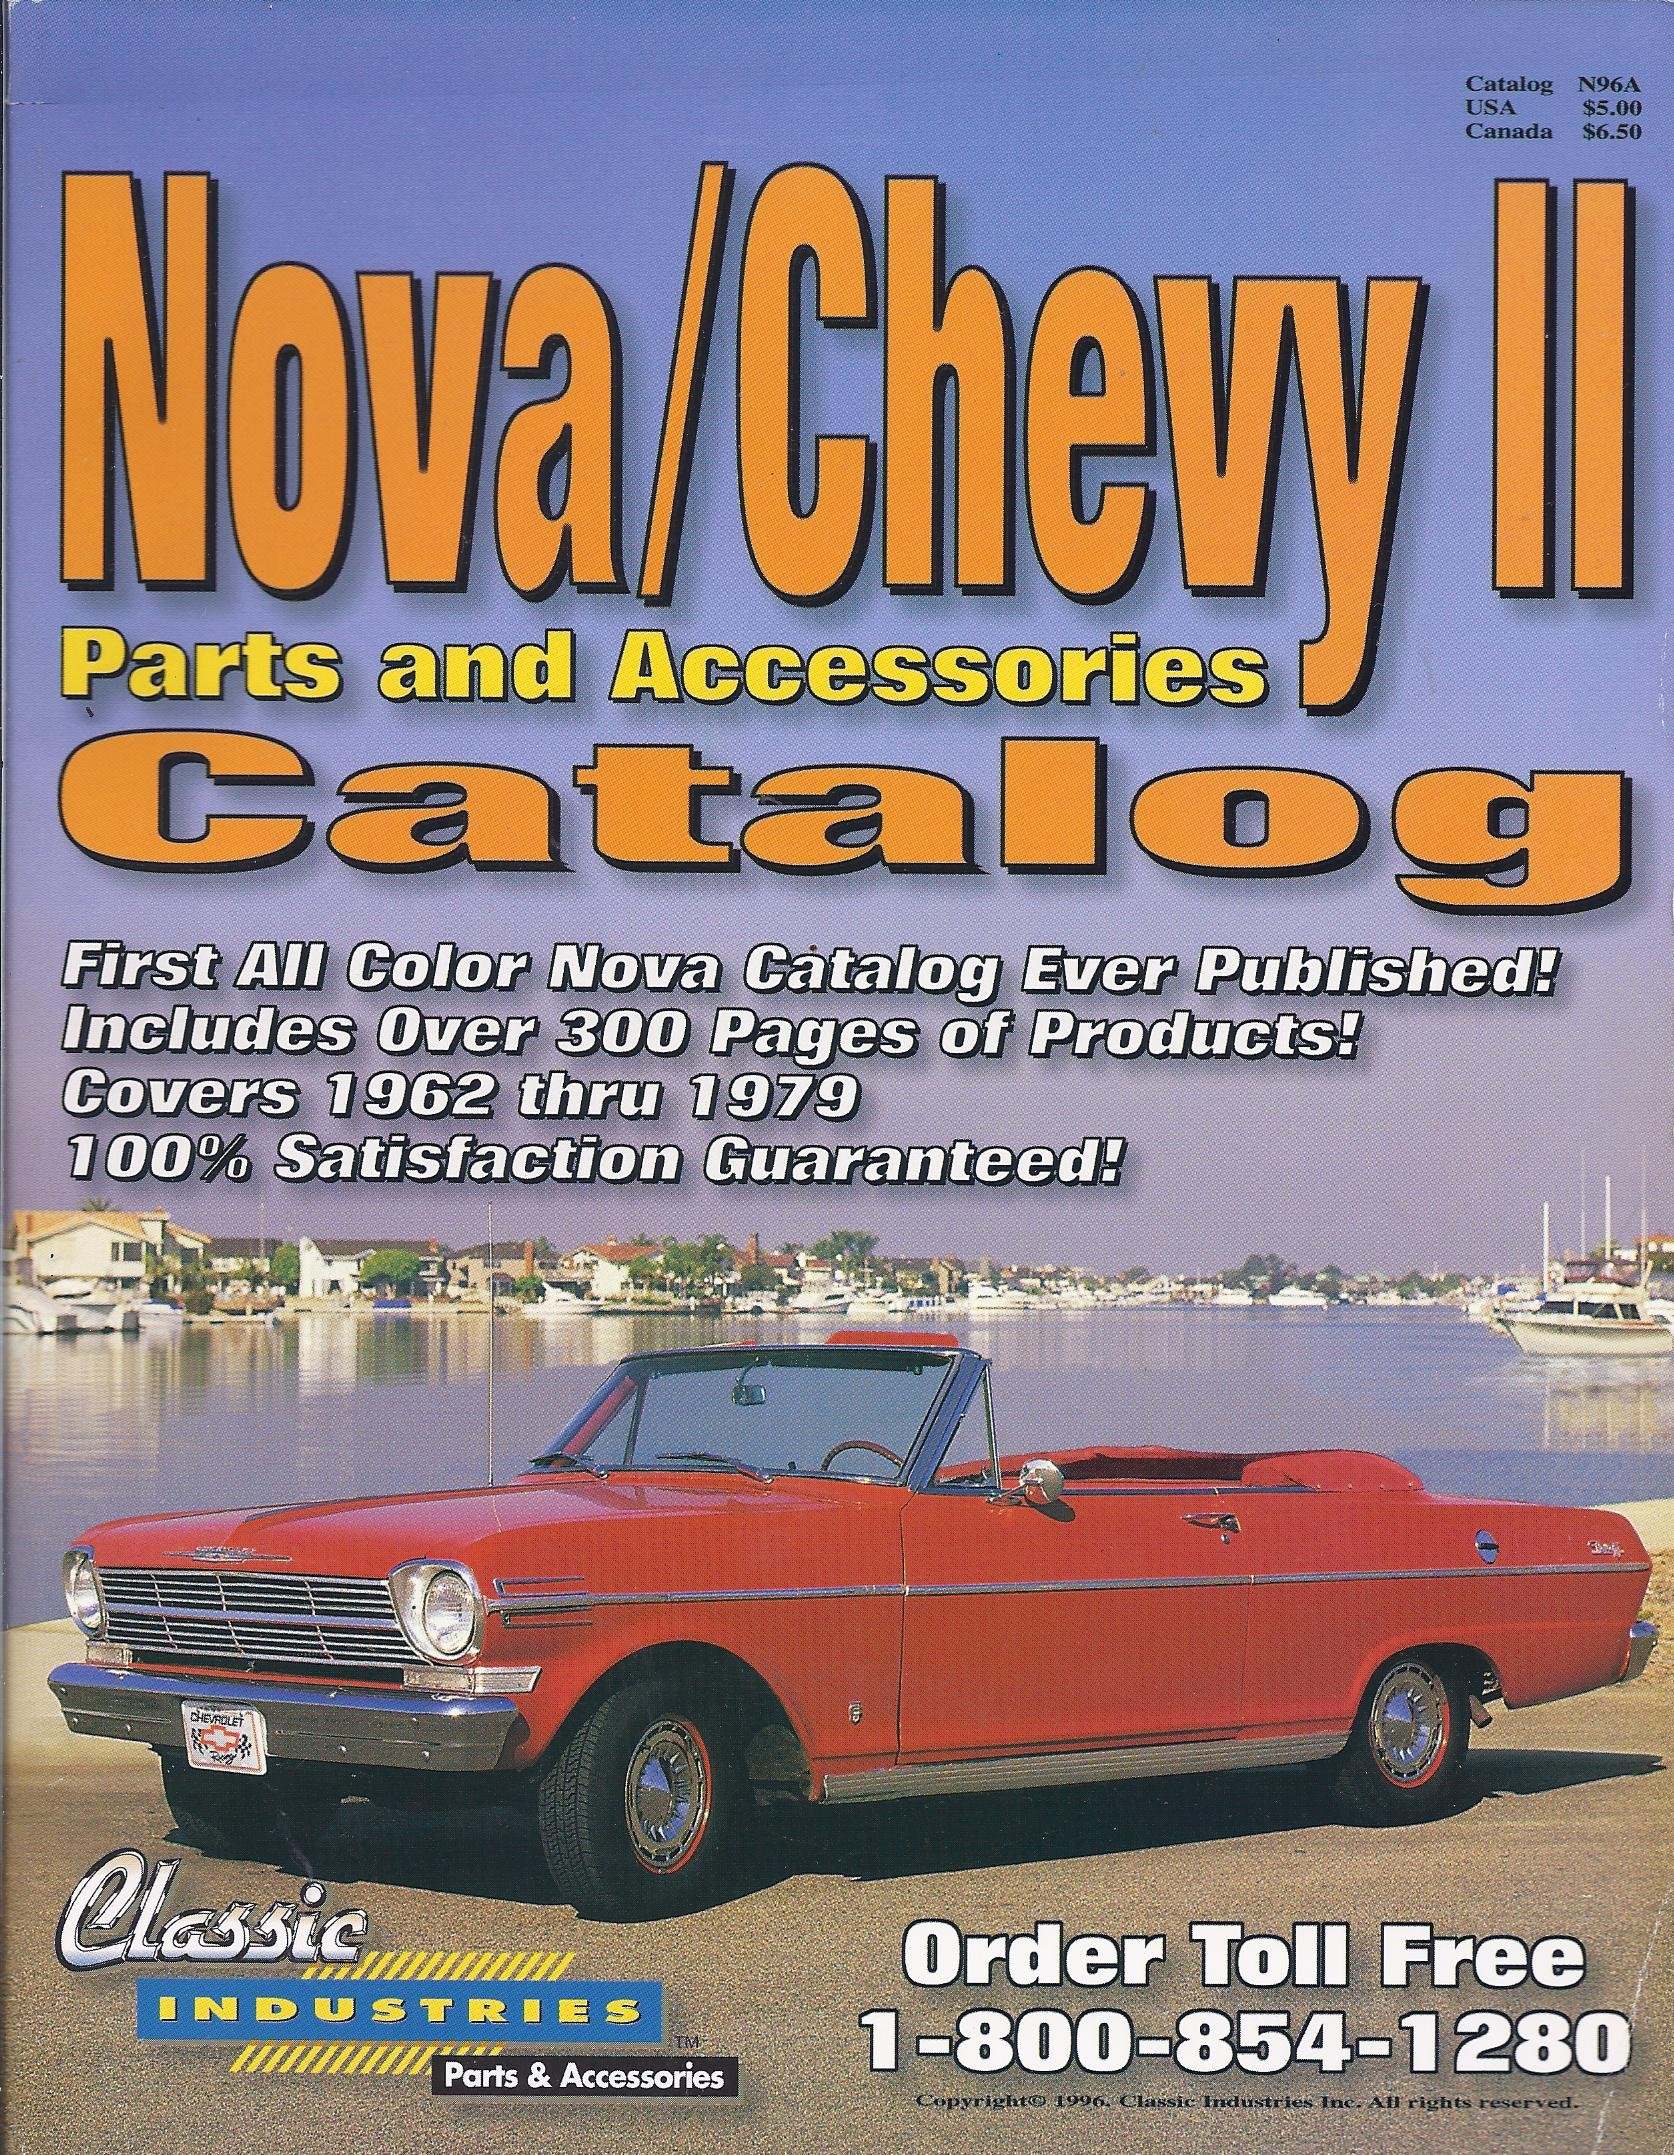 Nova / Chevy II Parts and Accessories Catalog (Covers 1962